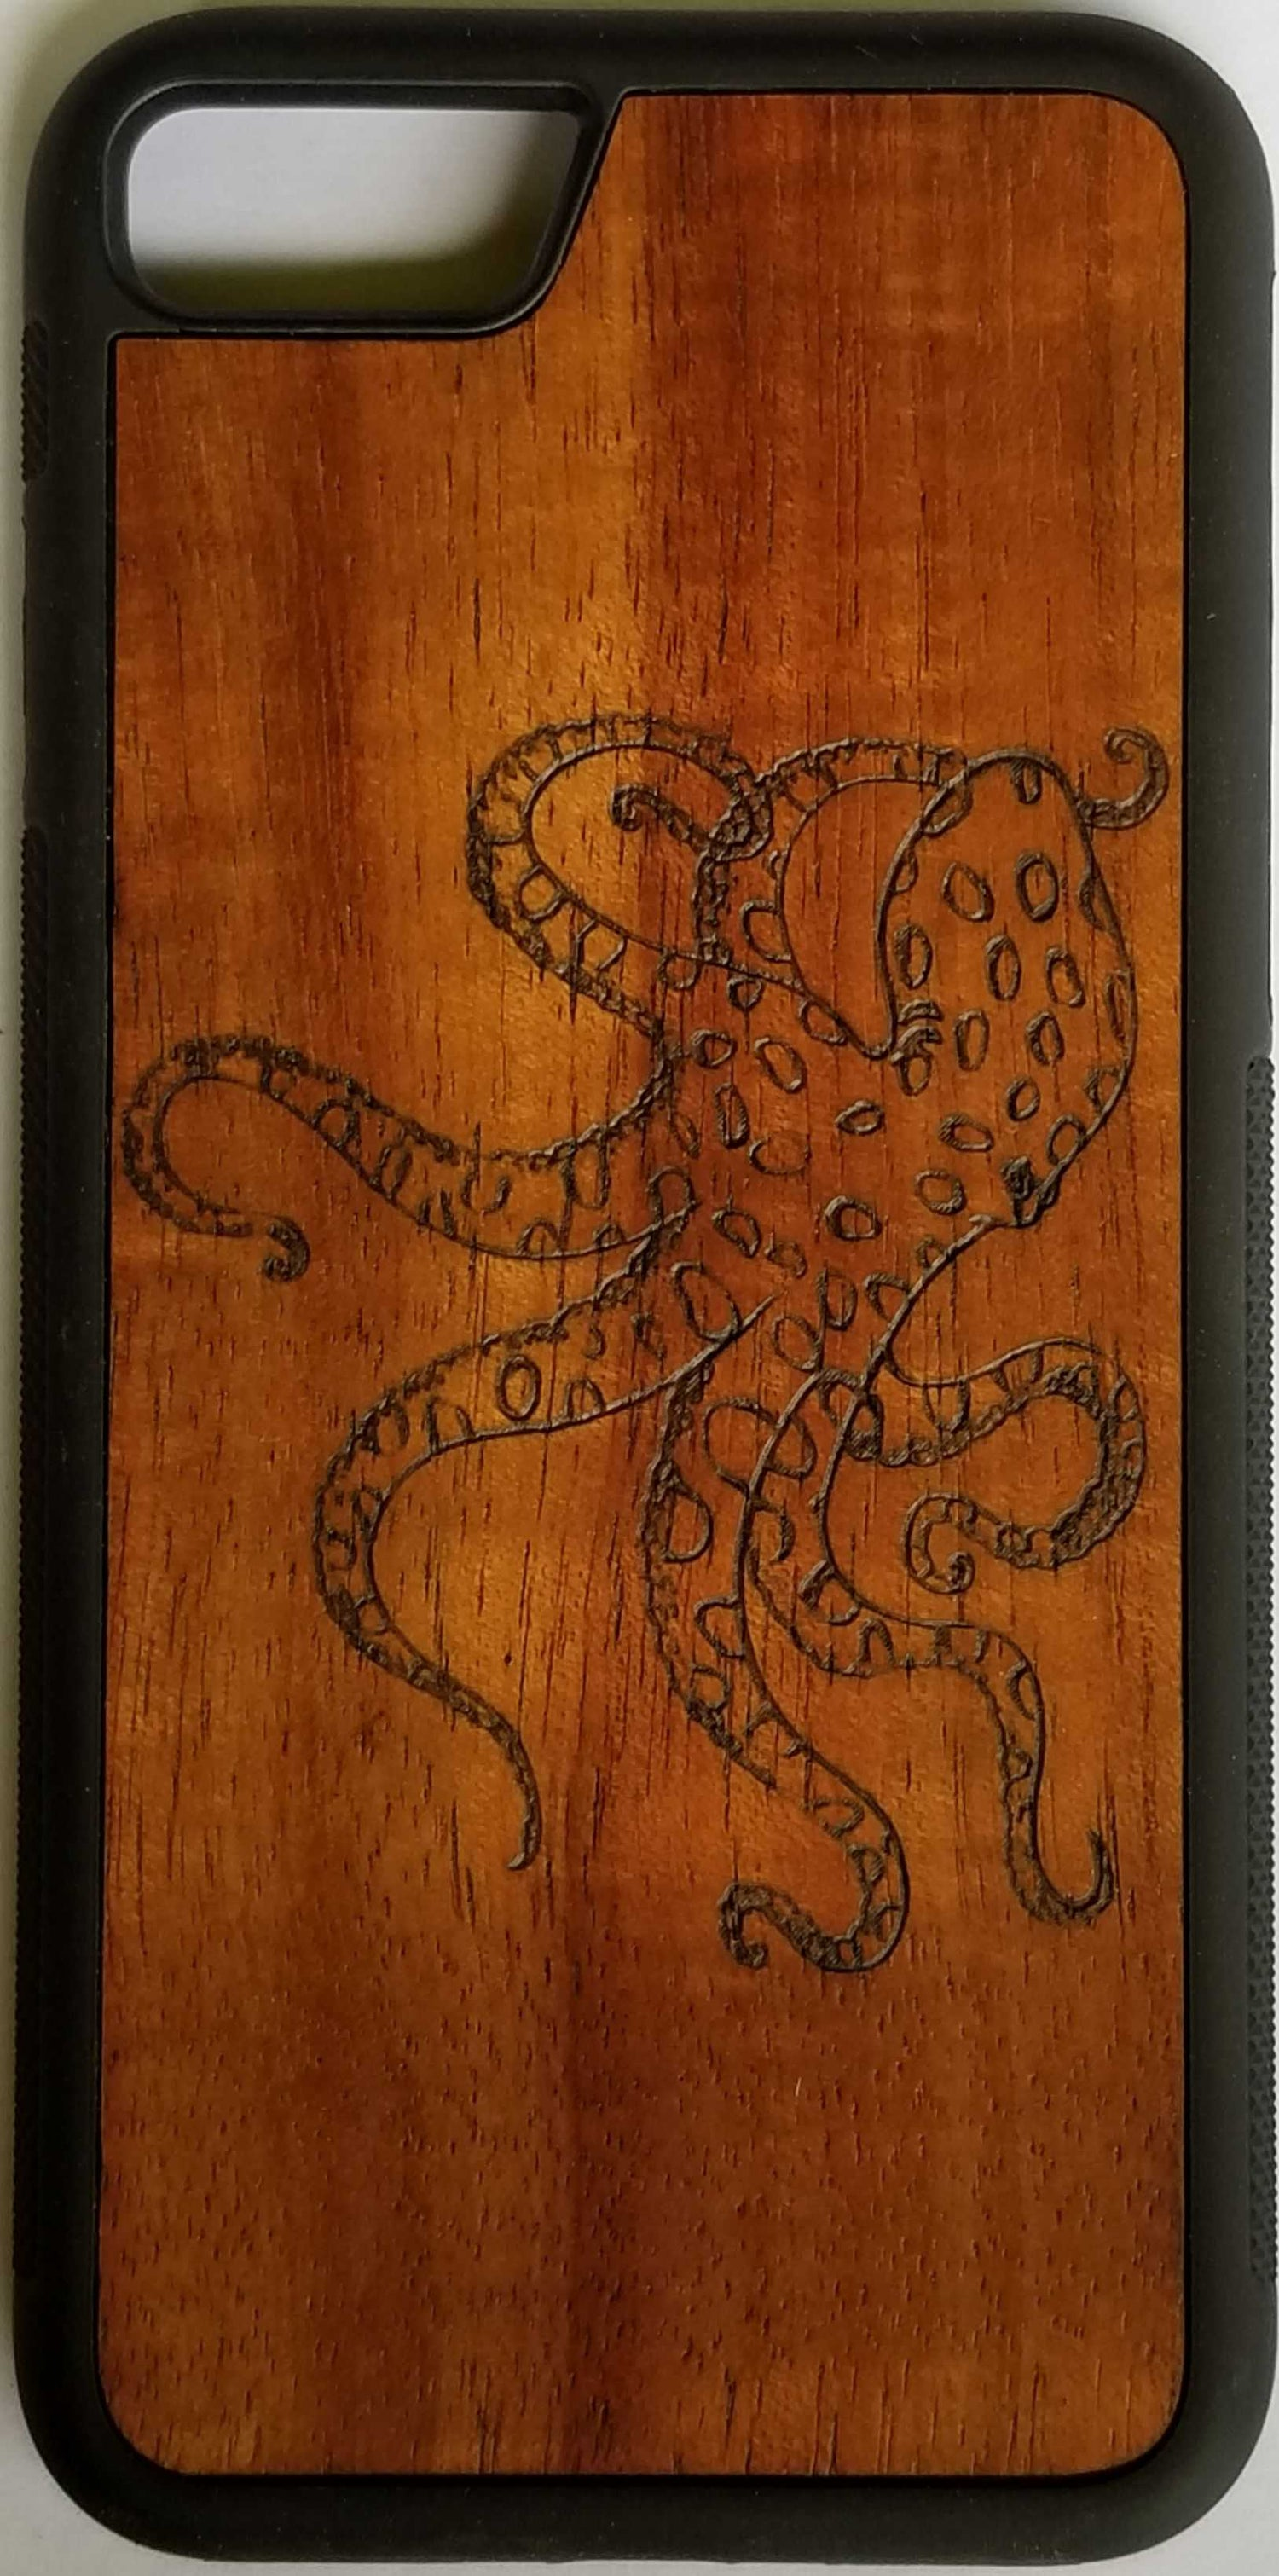 Image of Octopus Koa wood phone case